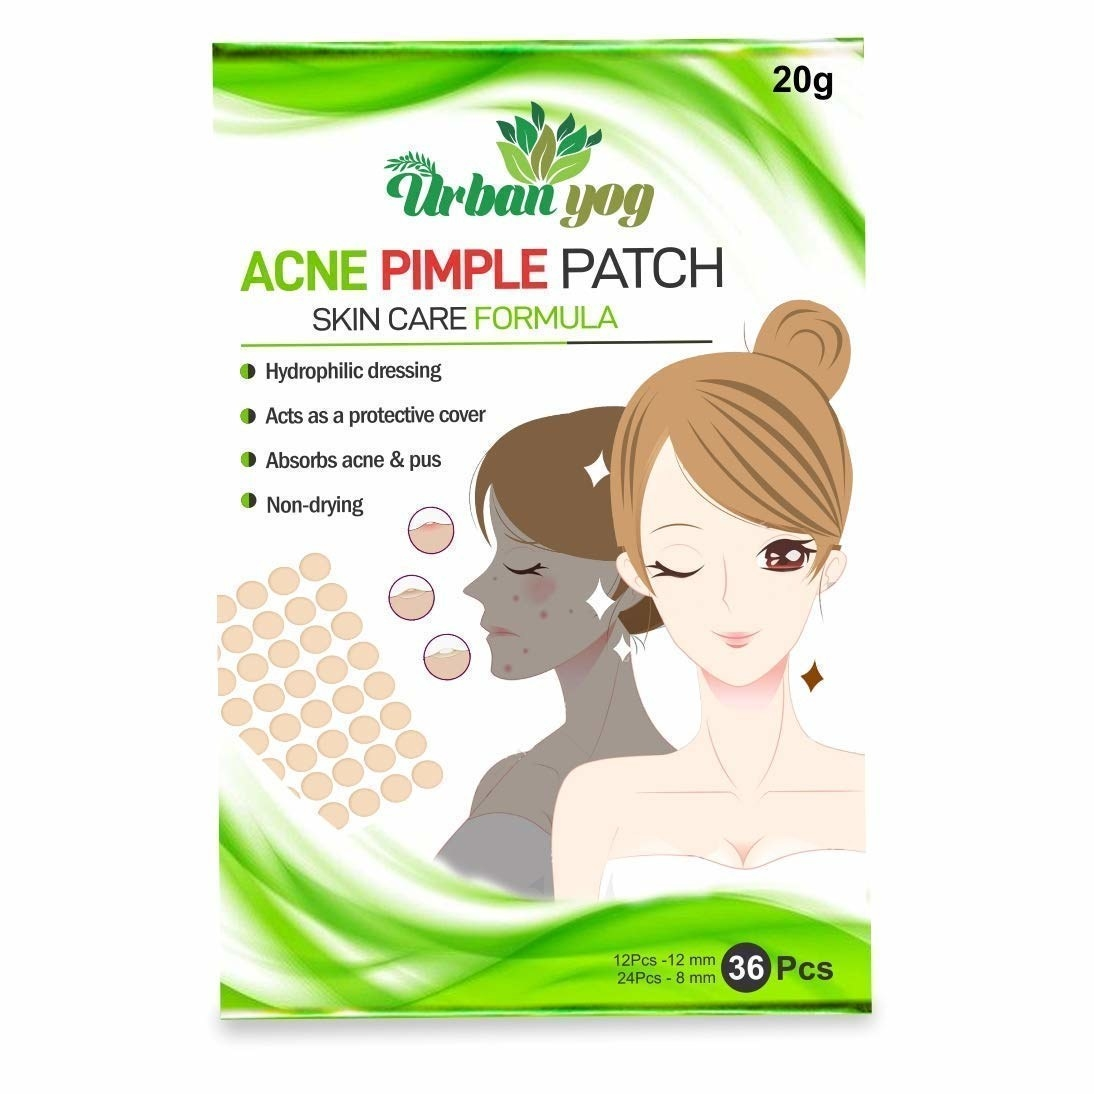 Packaging of the pimple patches